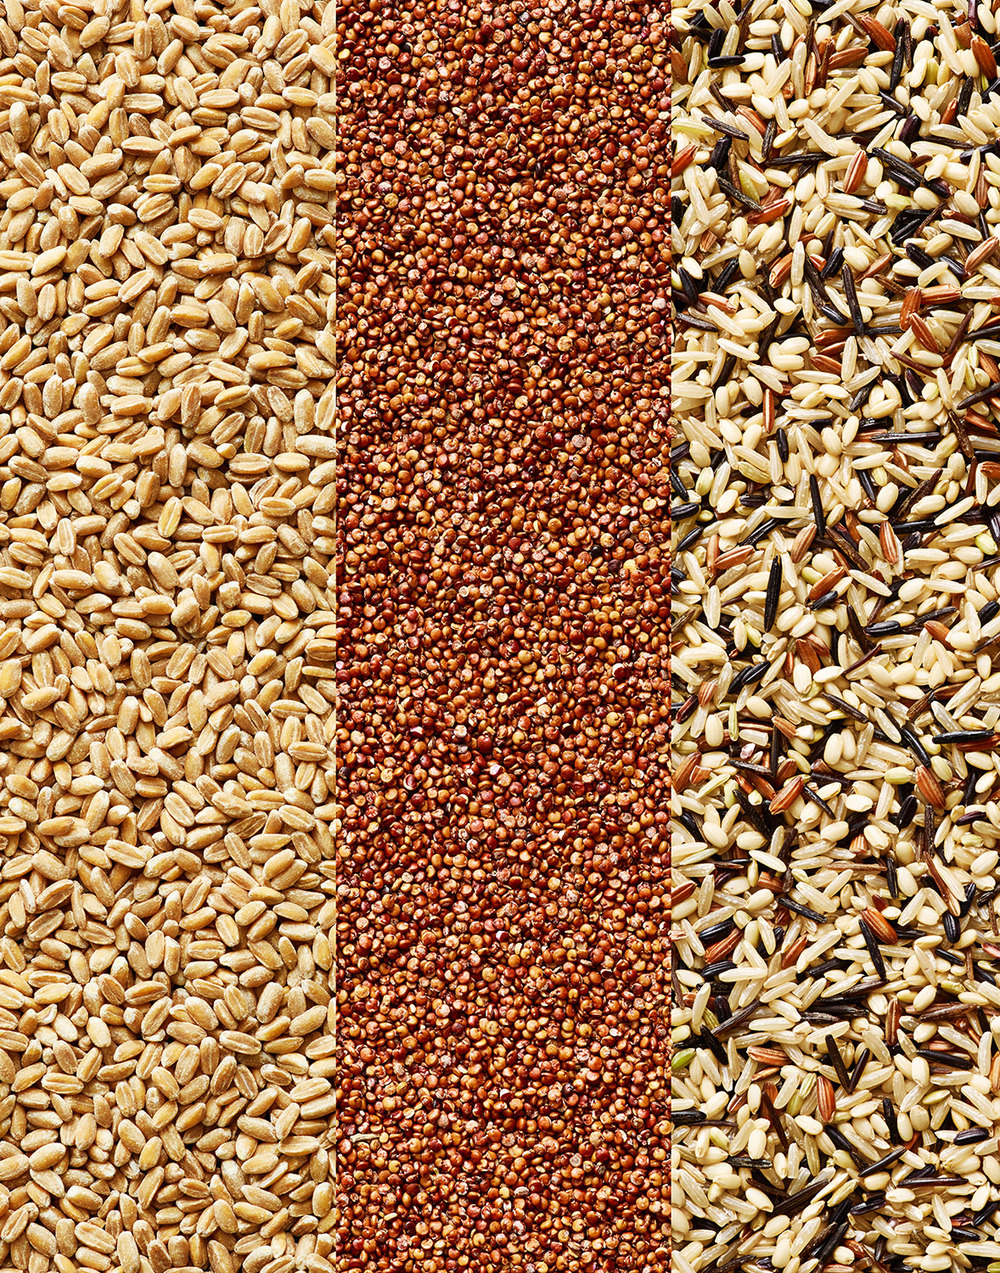 Grains: Farro, Quinoa, Wild Rice